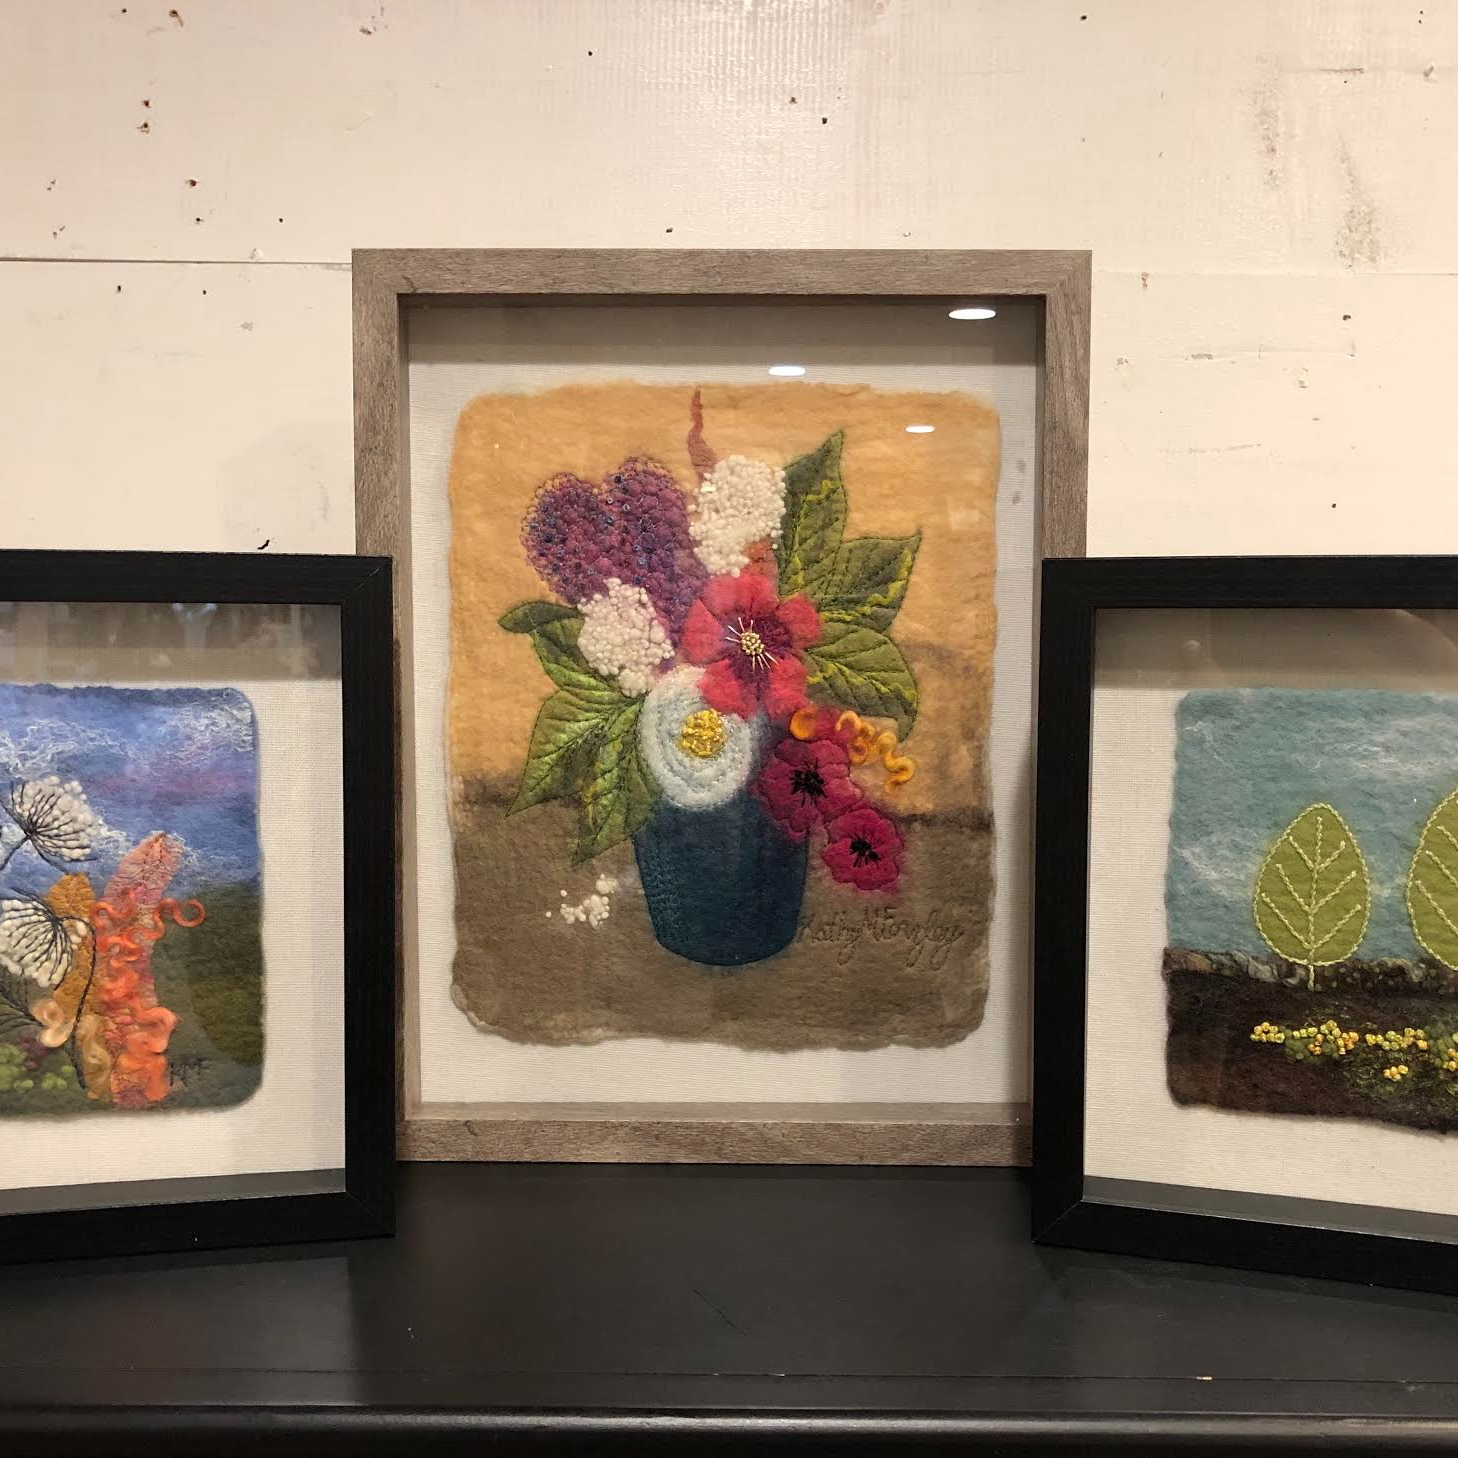 Kathy Forzley    Amazing felting artist has her work at Sweet Peony and also teaches Wet Felting Classes at My Sweet Peony!